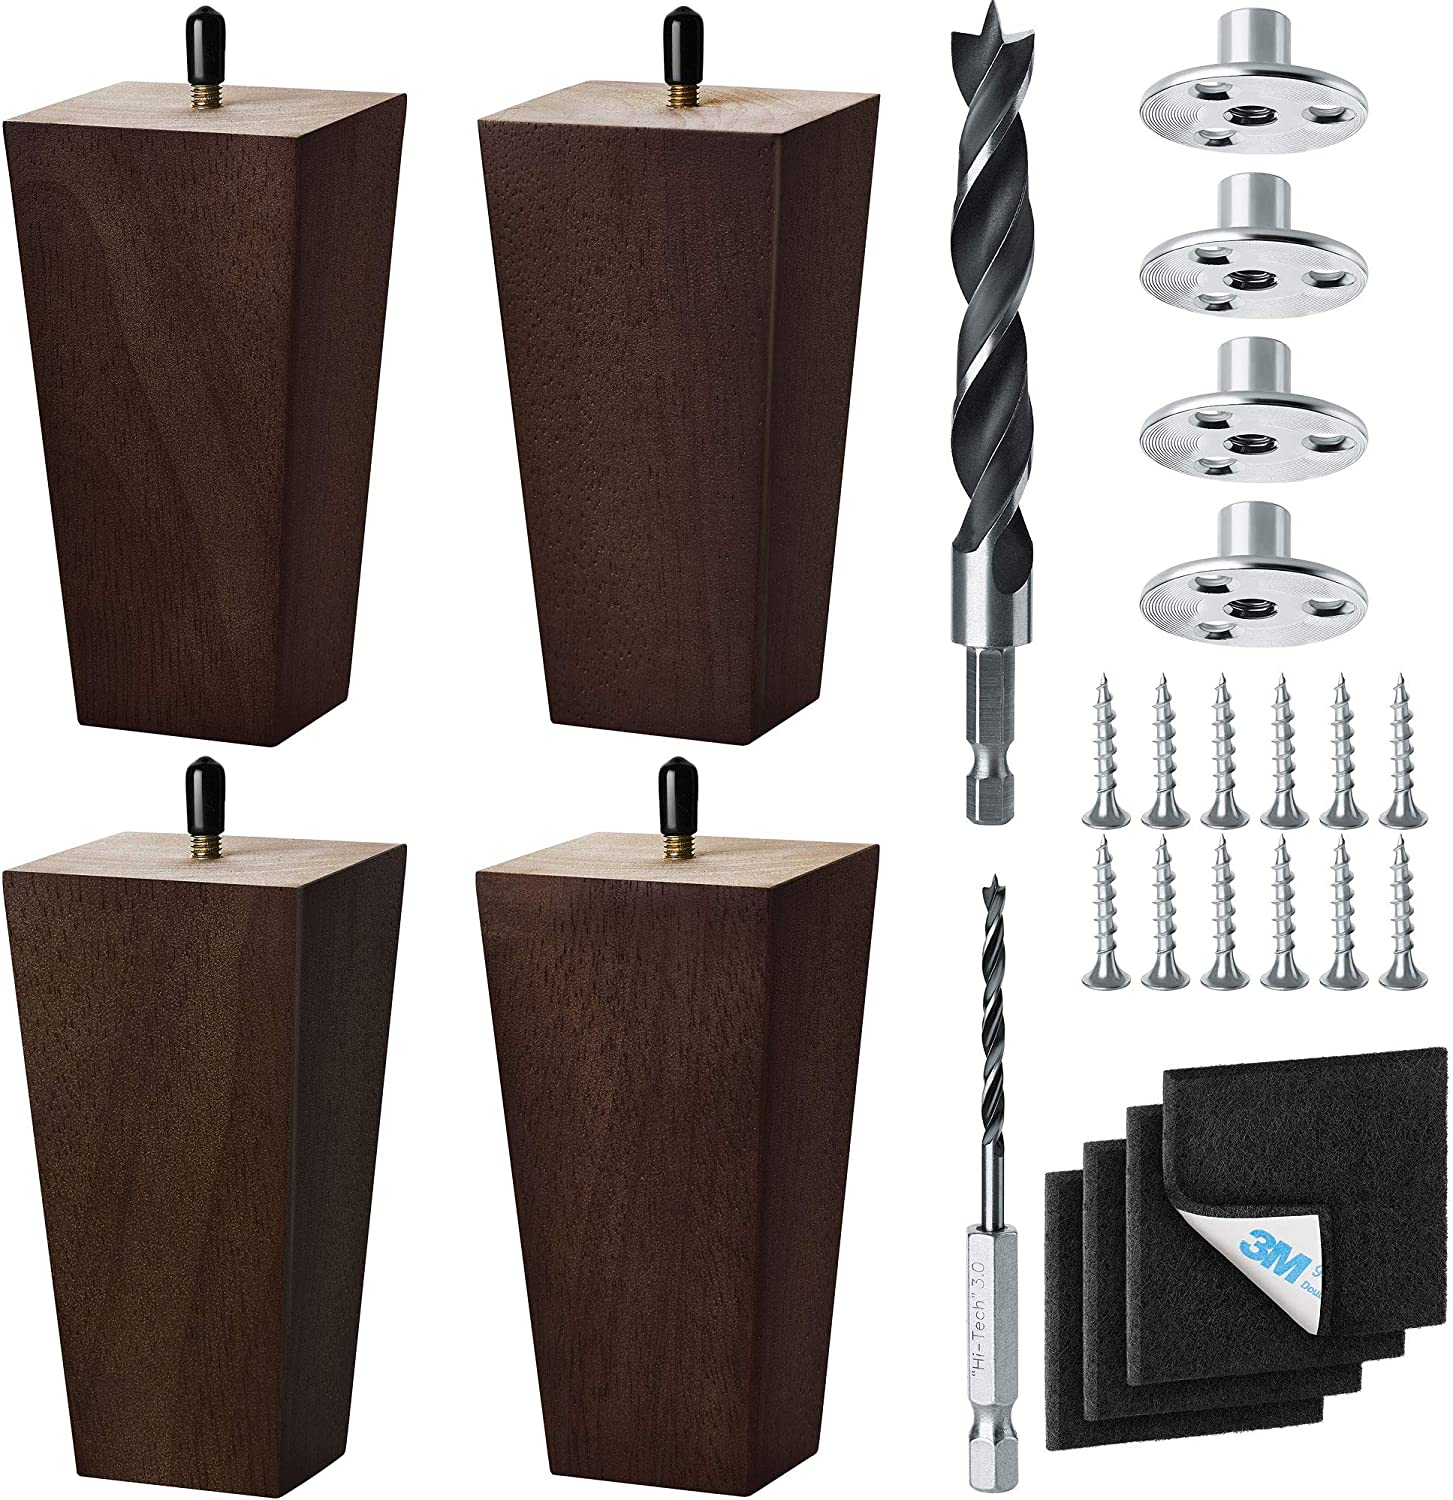 6 Inch 4 years warranty - All items free shipping Furniture Legs 4-Pack – for Rubber Couc Wood